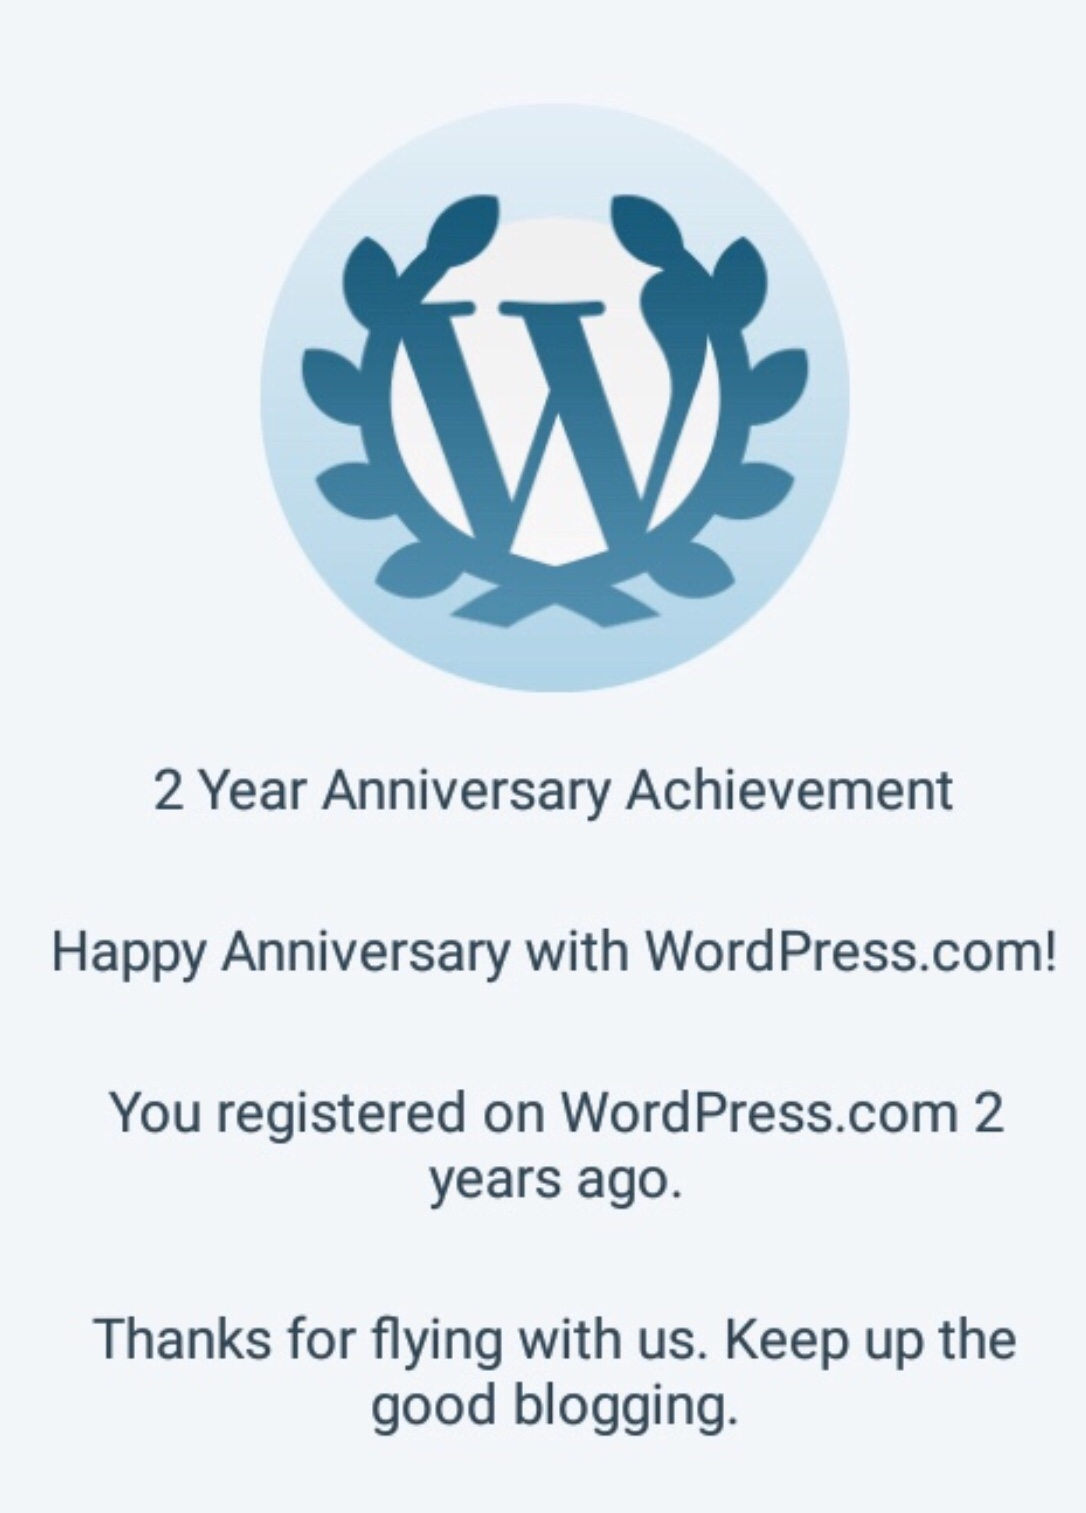 2 Years Blogging At 2 Cats and a Blog. Thank you to all of our followers and readers of this cat blog.